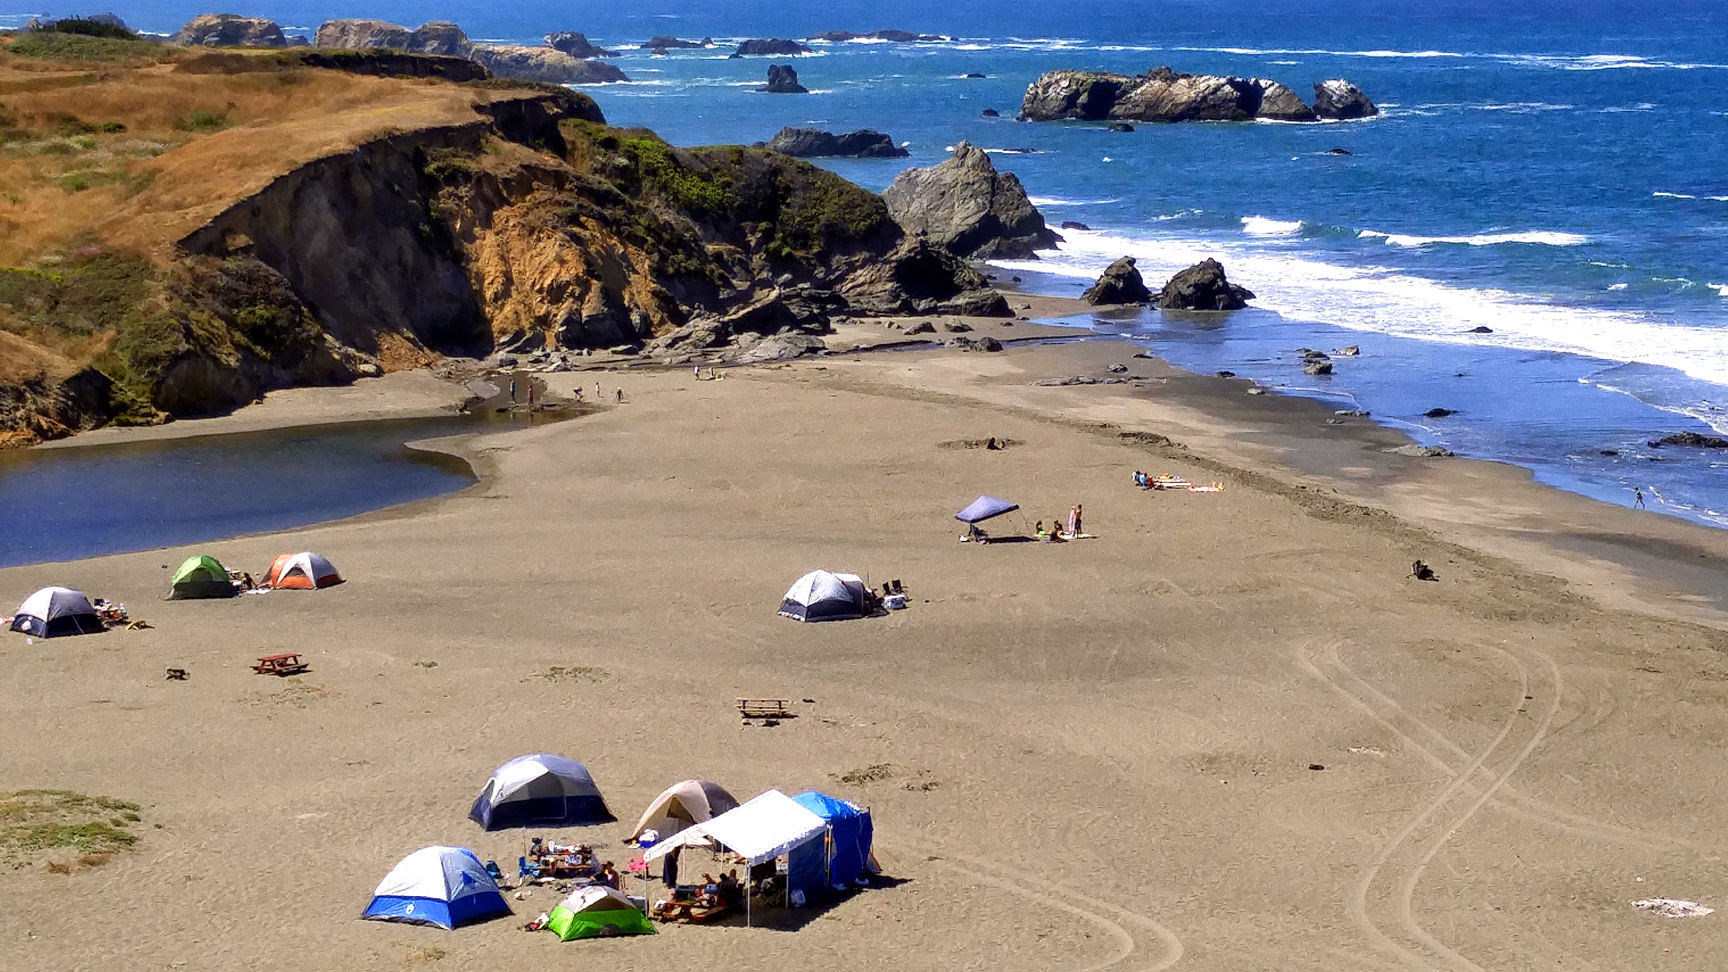 Camping on the beach at Wages Creek, north of Fort Bragg CA. Photo: Mary Charlebois